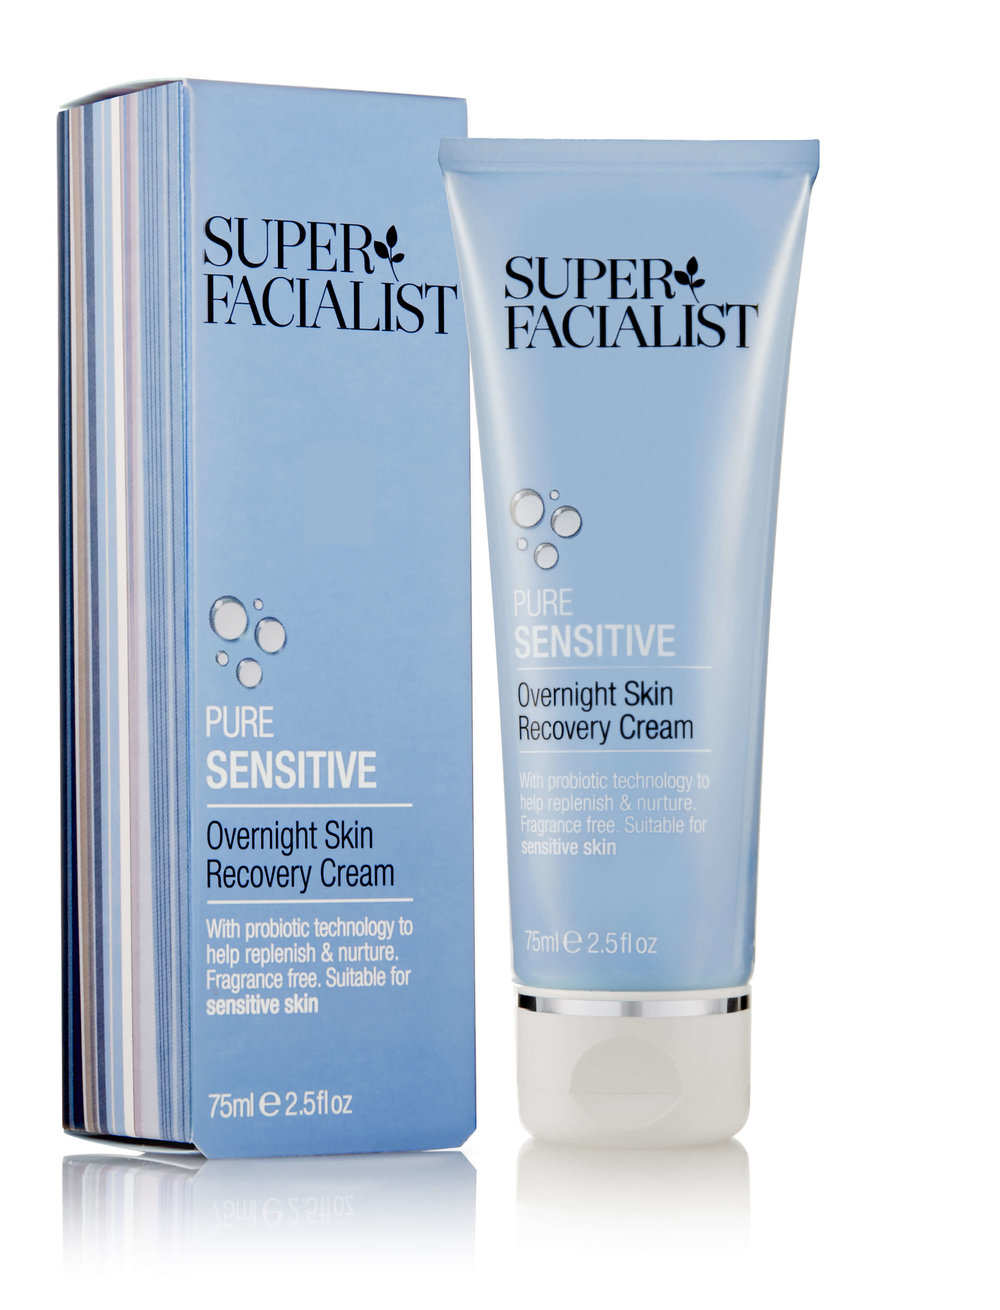 - Super Facialist Pure Sensitive Overnight Skin Recovery Cream